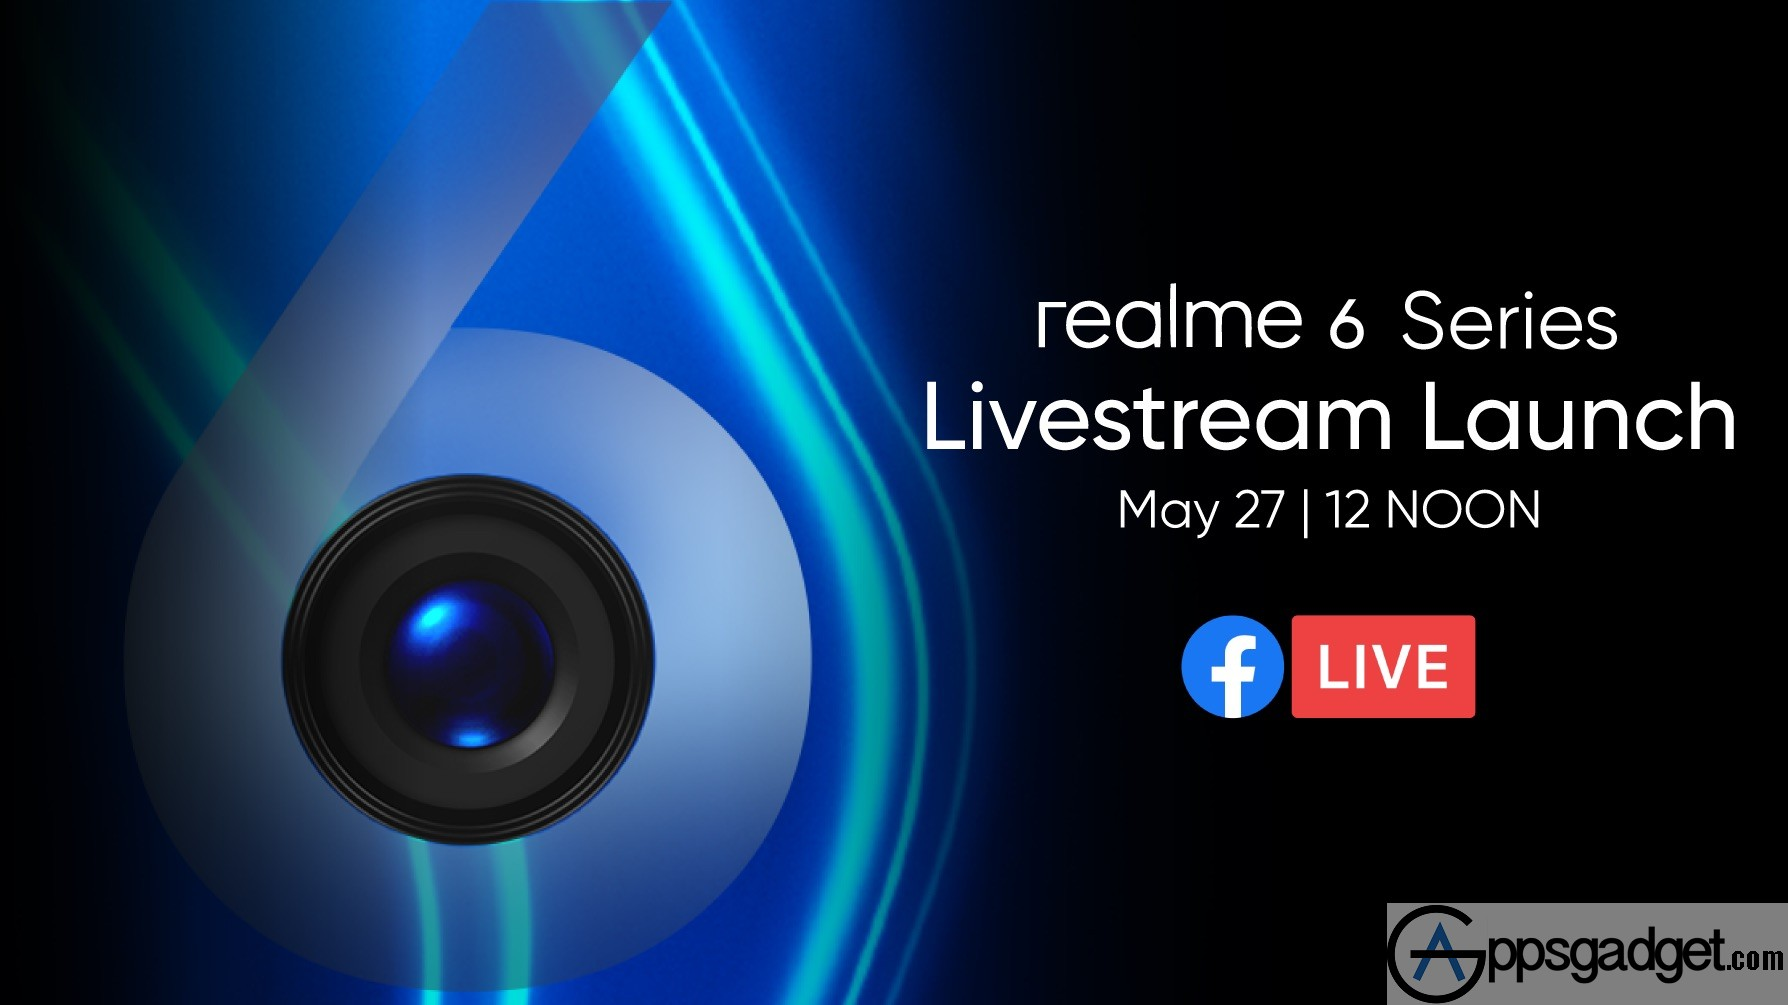 realme 6 and realme 6 Pro to Launch on May 27 via Facebook Live Stream Online